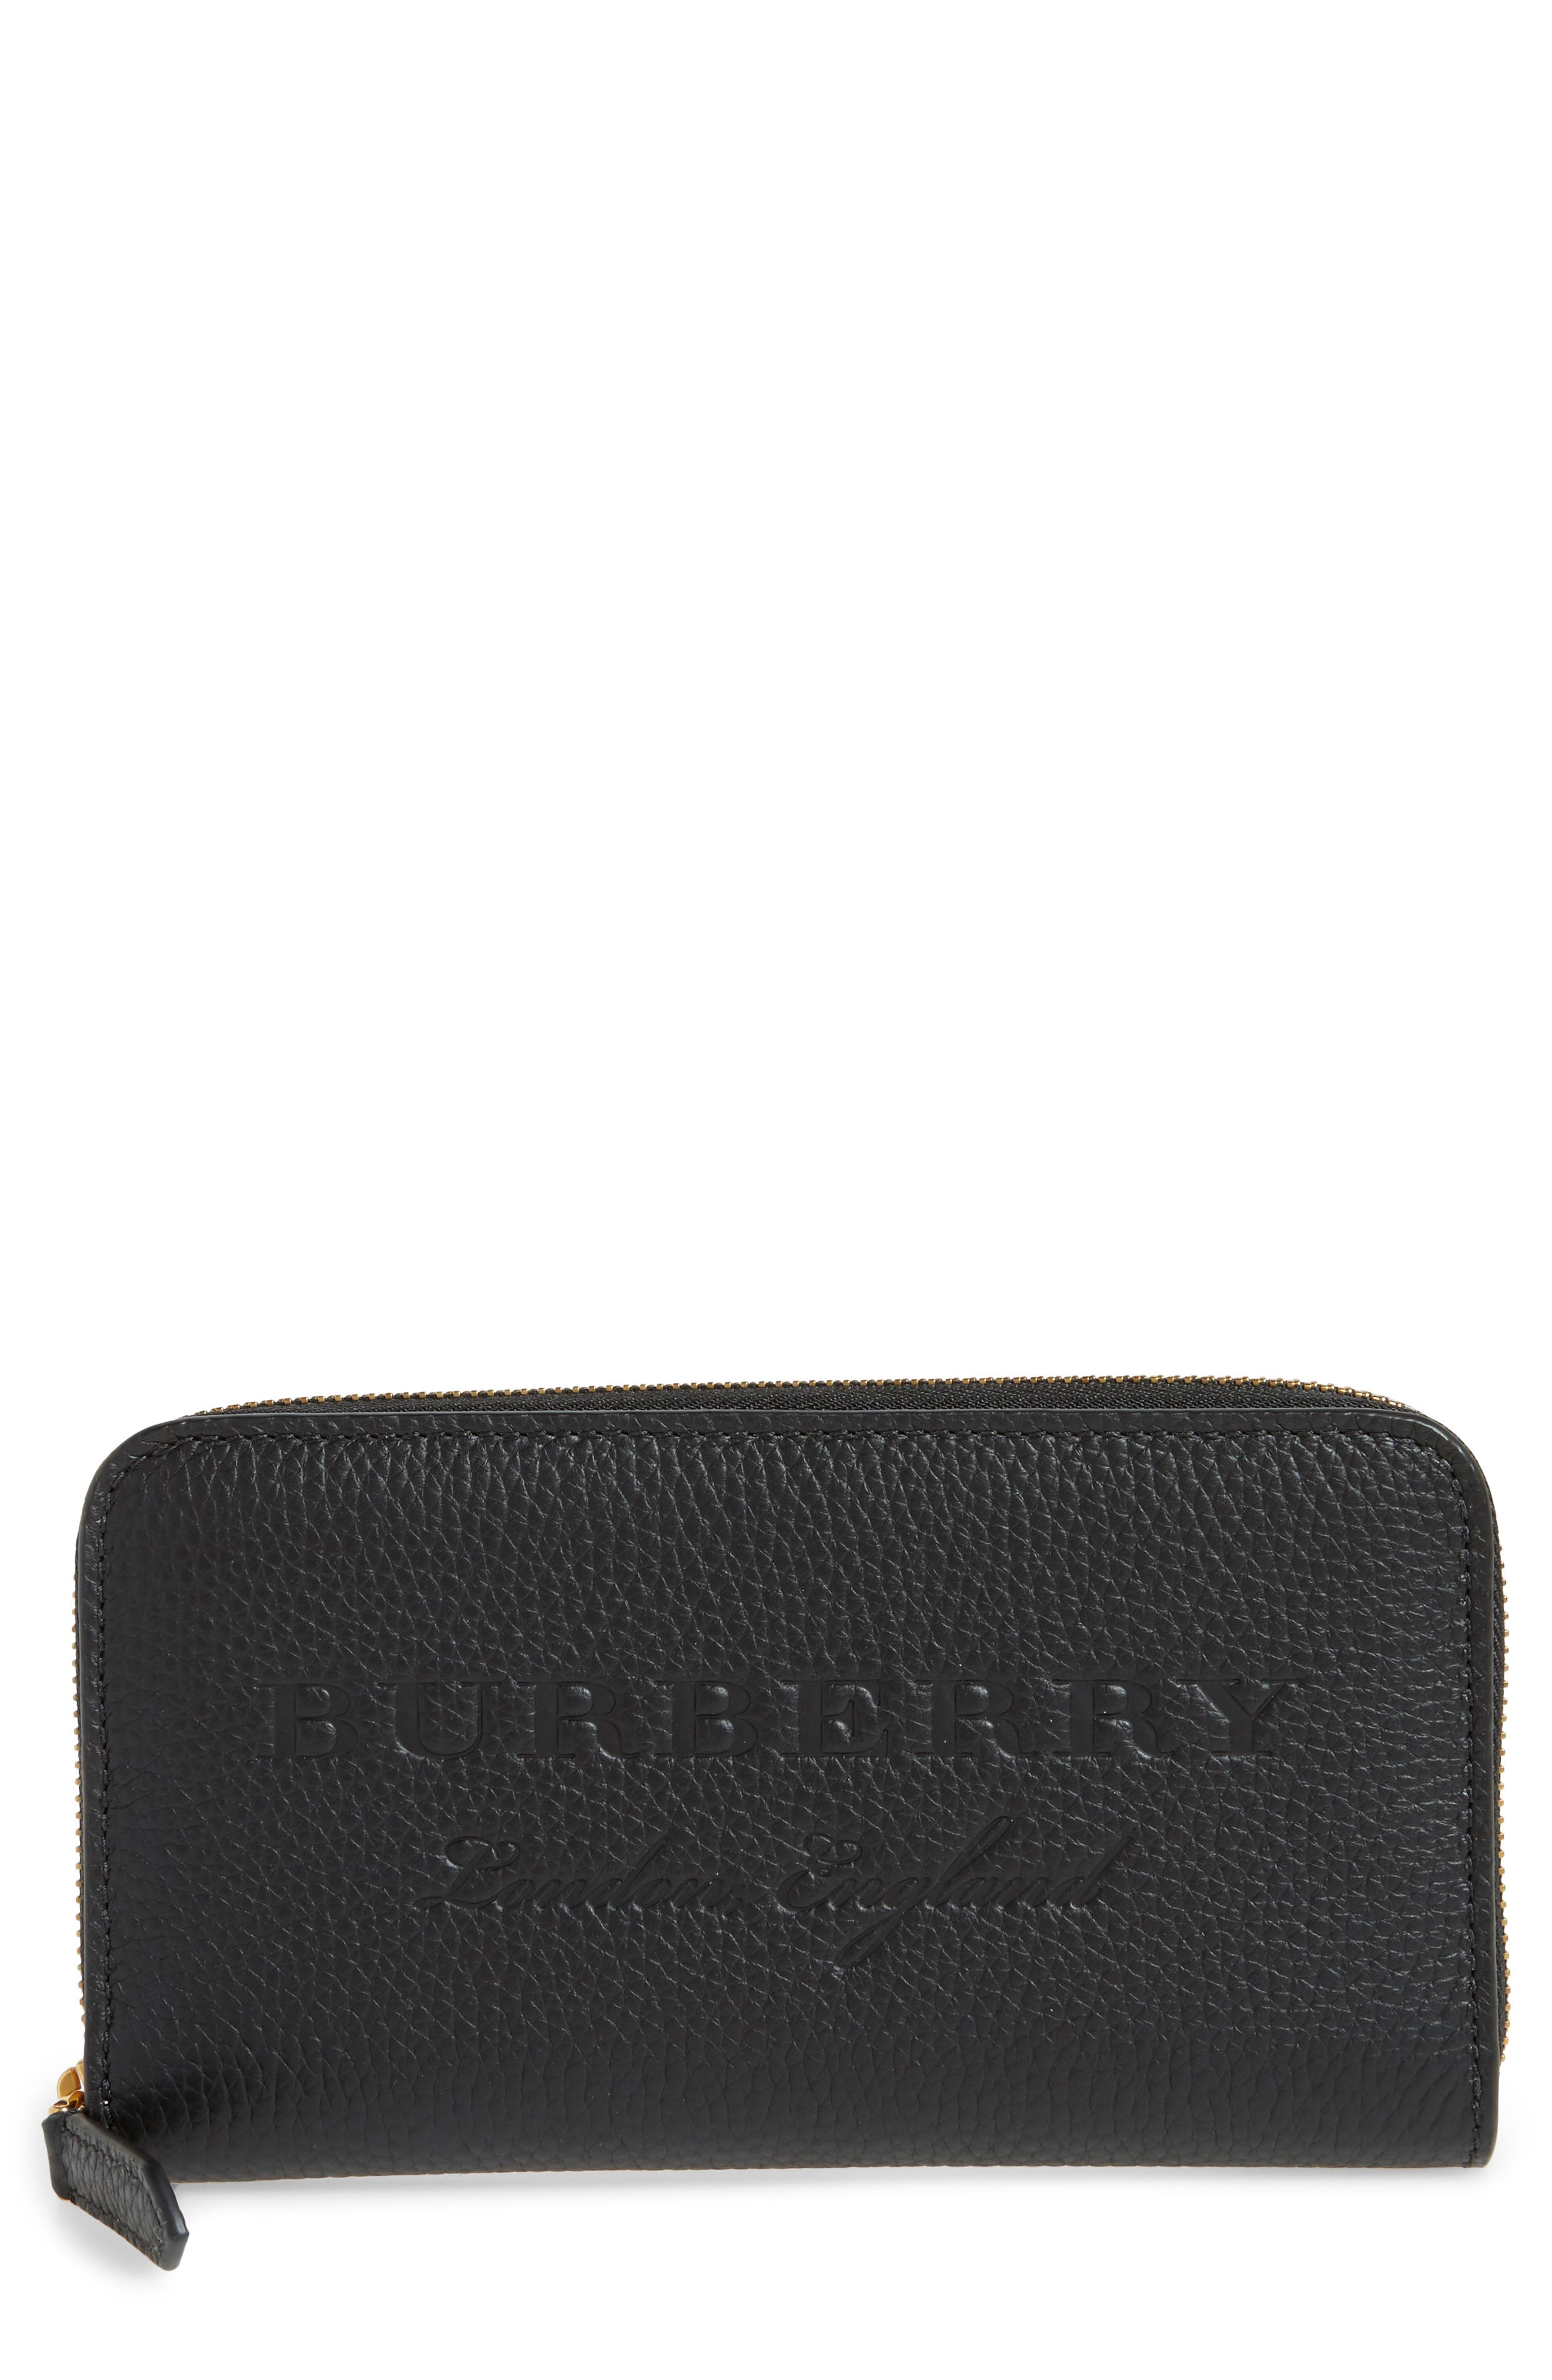 Leather Zip-Around Wallet,                         Main,                         color, 001